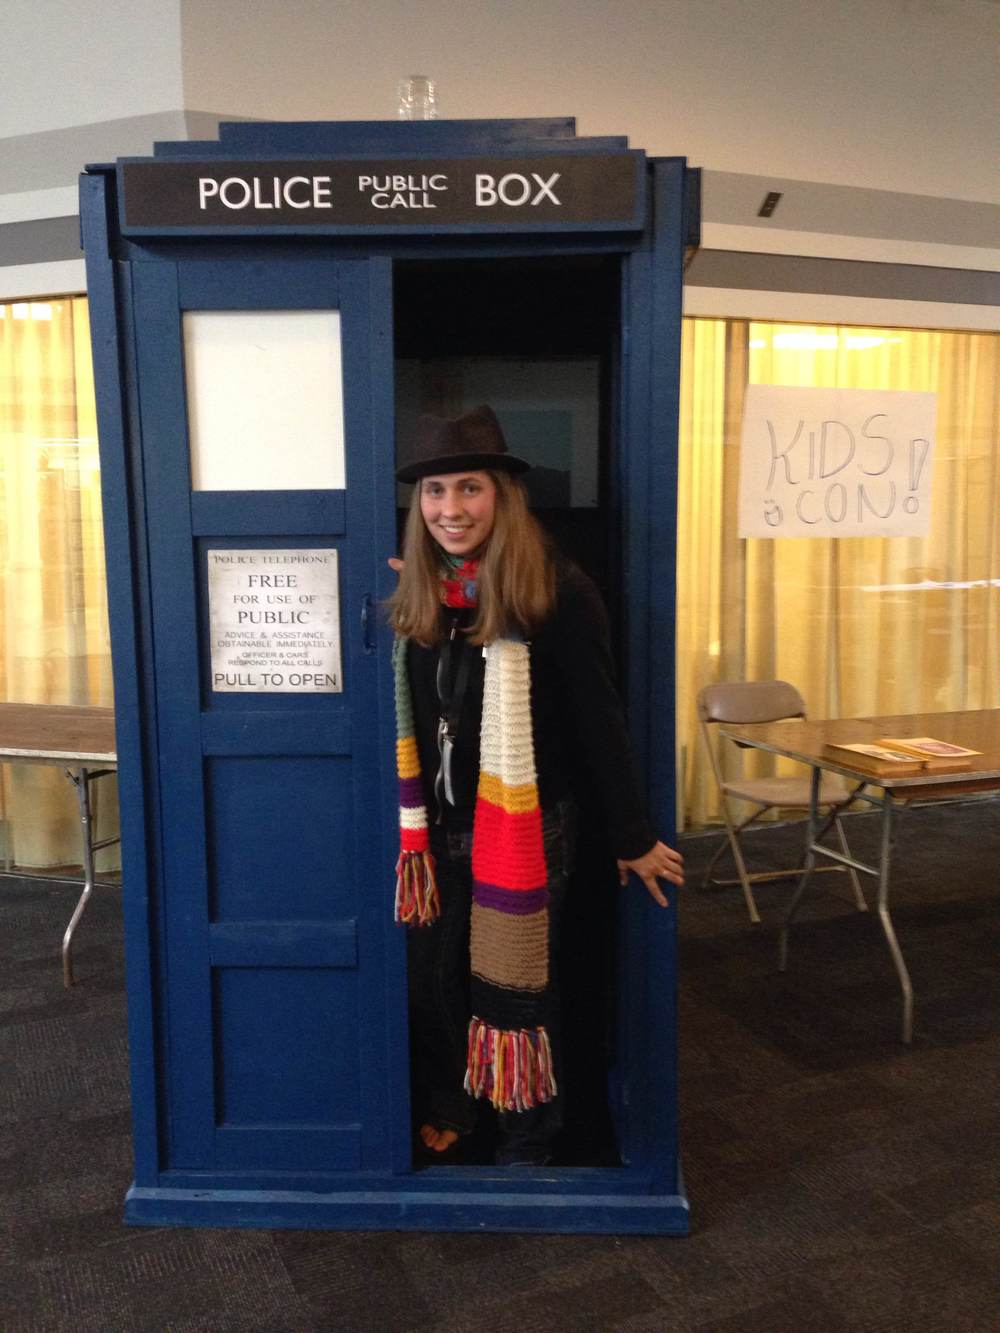 Me, in the Tardis, in my 4th Doctor scarf and hat.